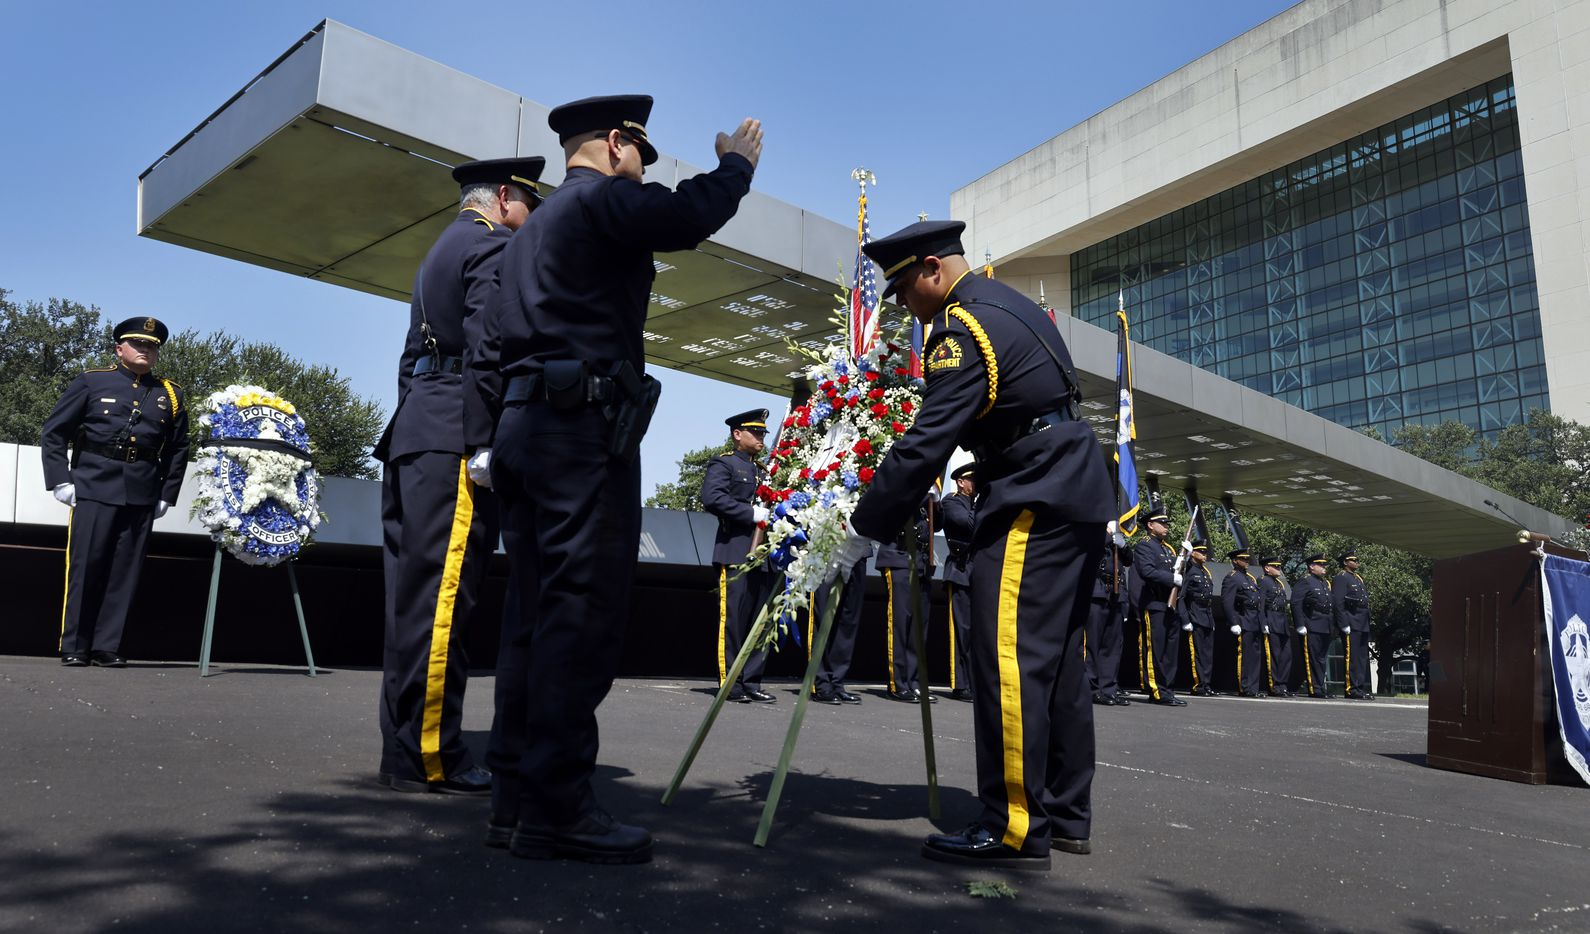 Dallas Police Chief Eddie Garcia salutes honor guard Gabriel Orosco before placing a 7-7 wreath in honor of the officers who died in the July 7th ambush. It was the 5th anniversary of the deadly day and special recognition was given to those officers who were killed during the 2021 Police Memorial Day at the Dallas Police Memorial in downtown Dallas, Wednesday, July 7, 2021. (Tom Fox/The Dallas Morning News)